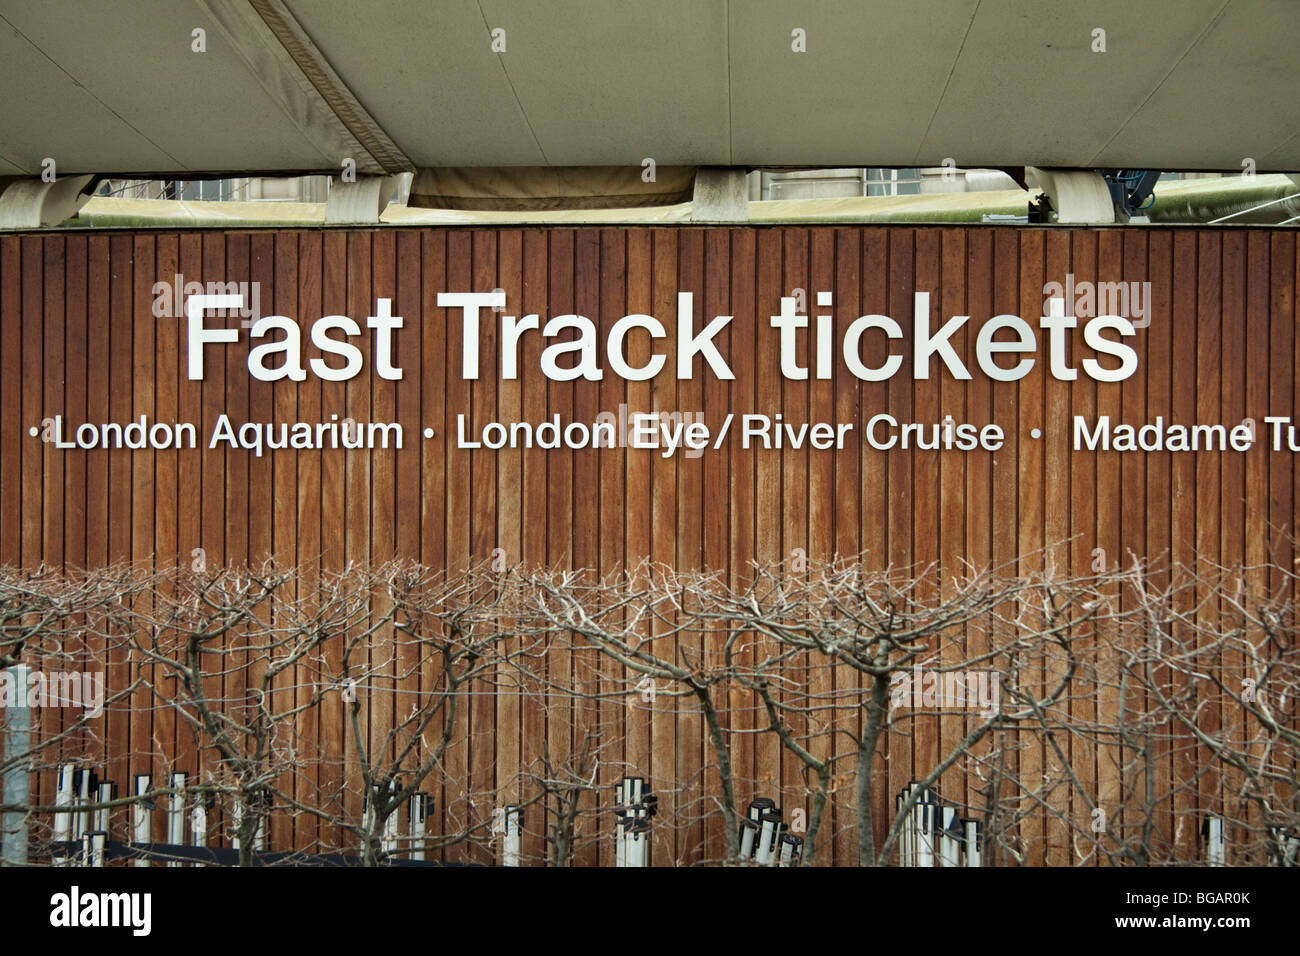 Fast-Track-Ticketschalter in London, England, Verkauf der Tickets für das London Aquarium, London Eye, Madame Stockbild